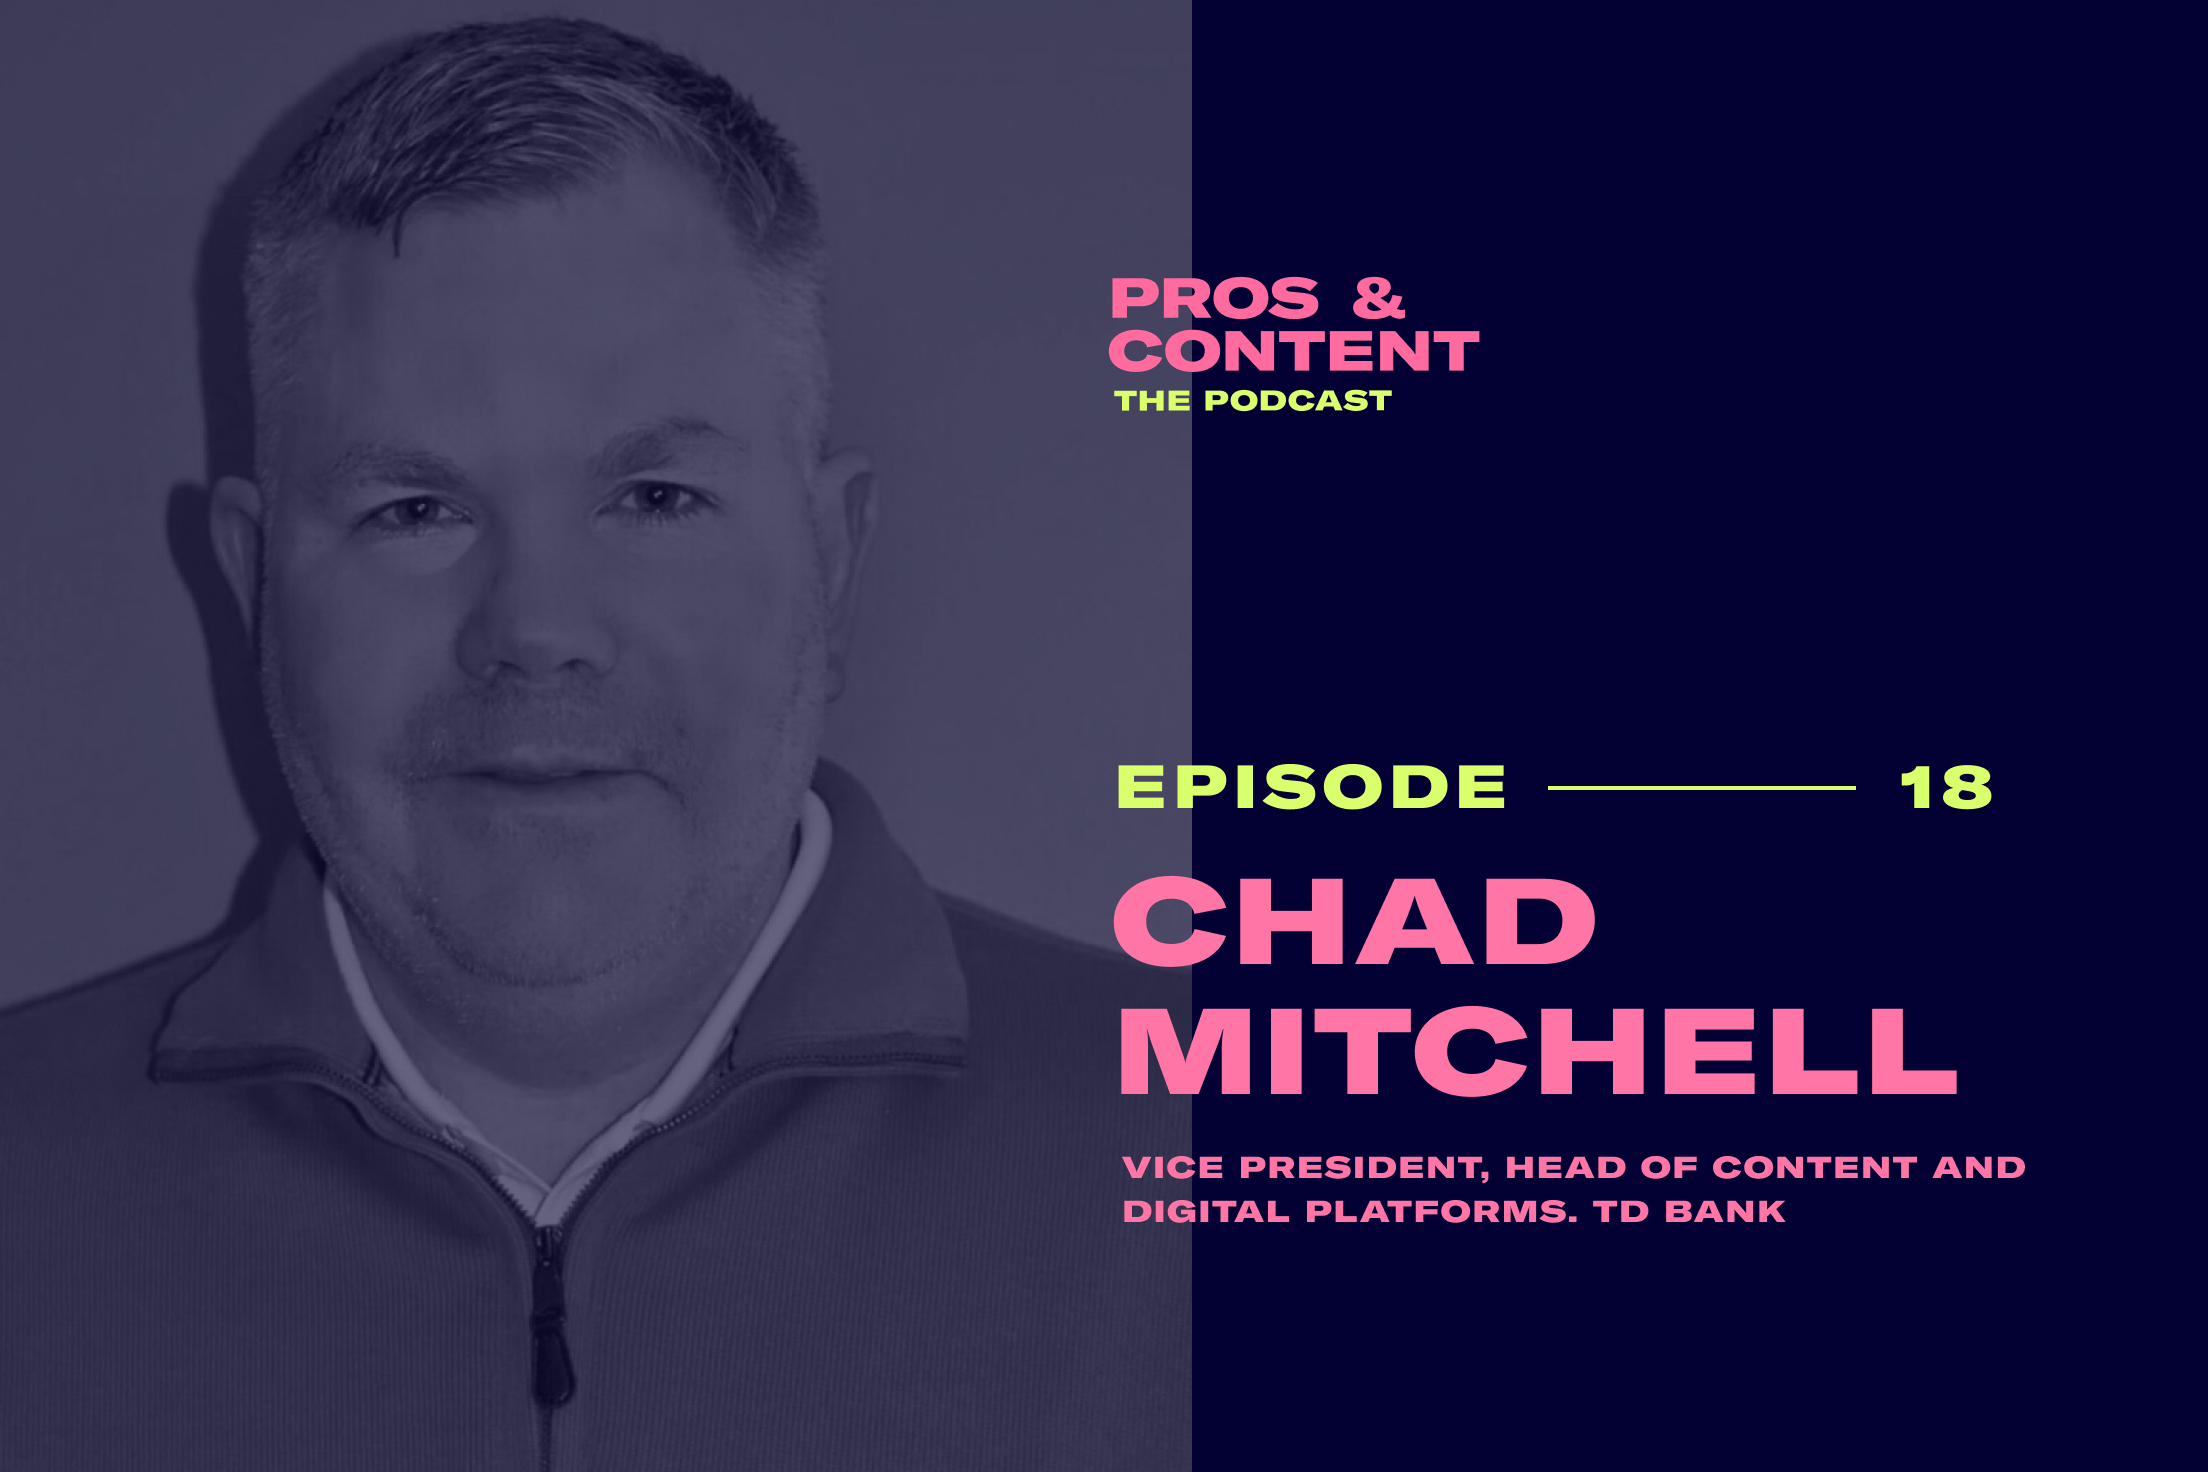 Pros & Content Podcast: Chad Mitchell